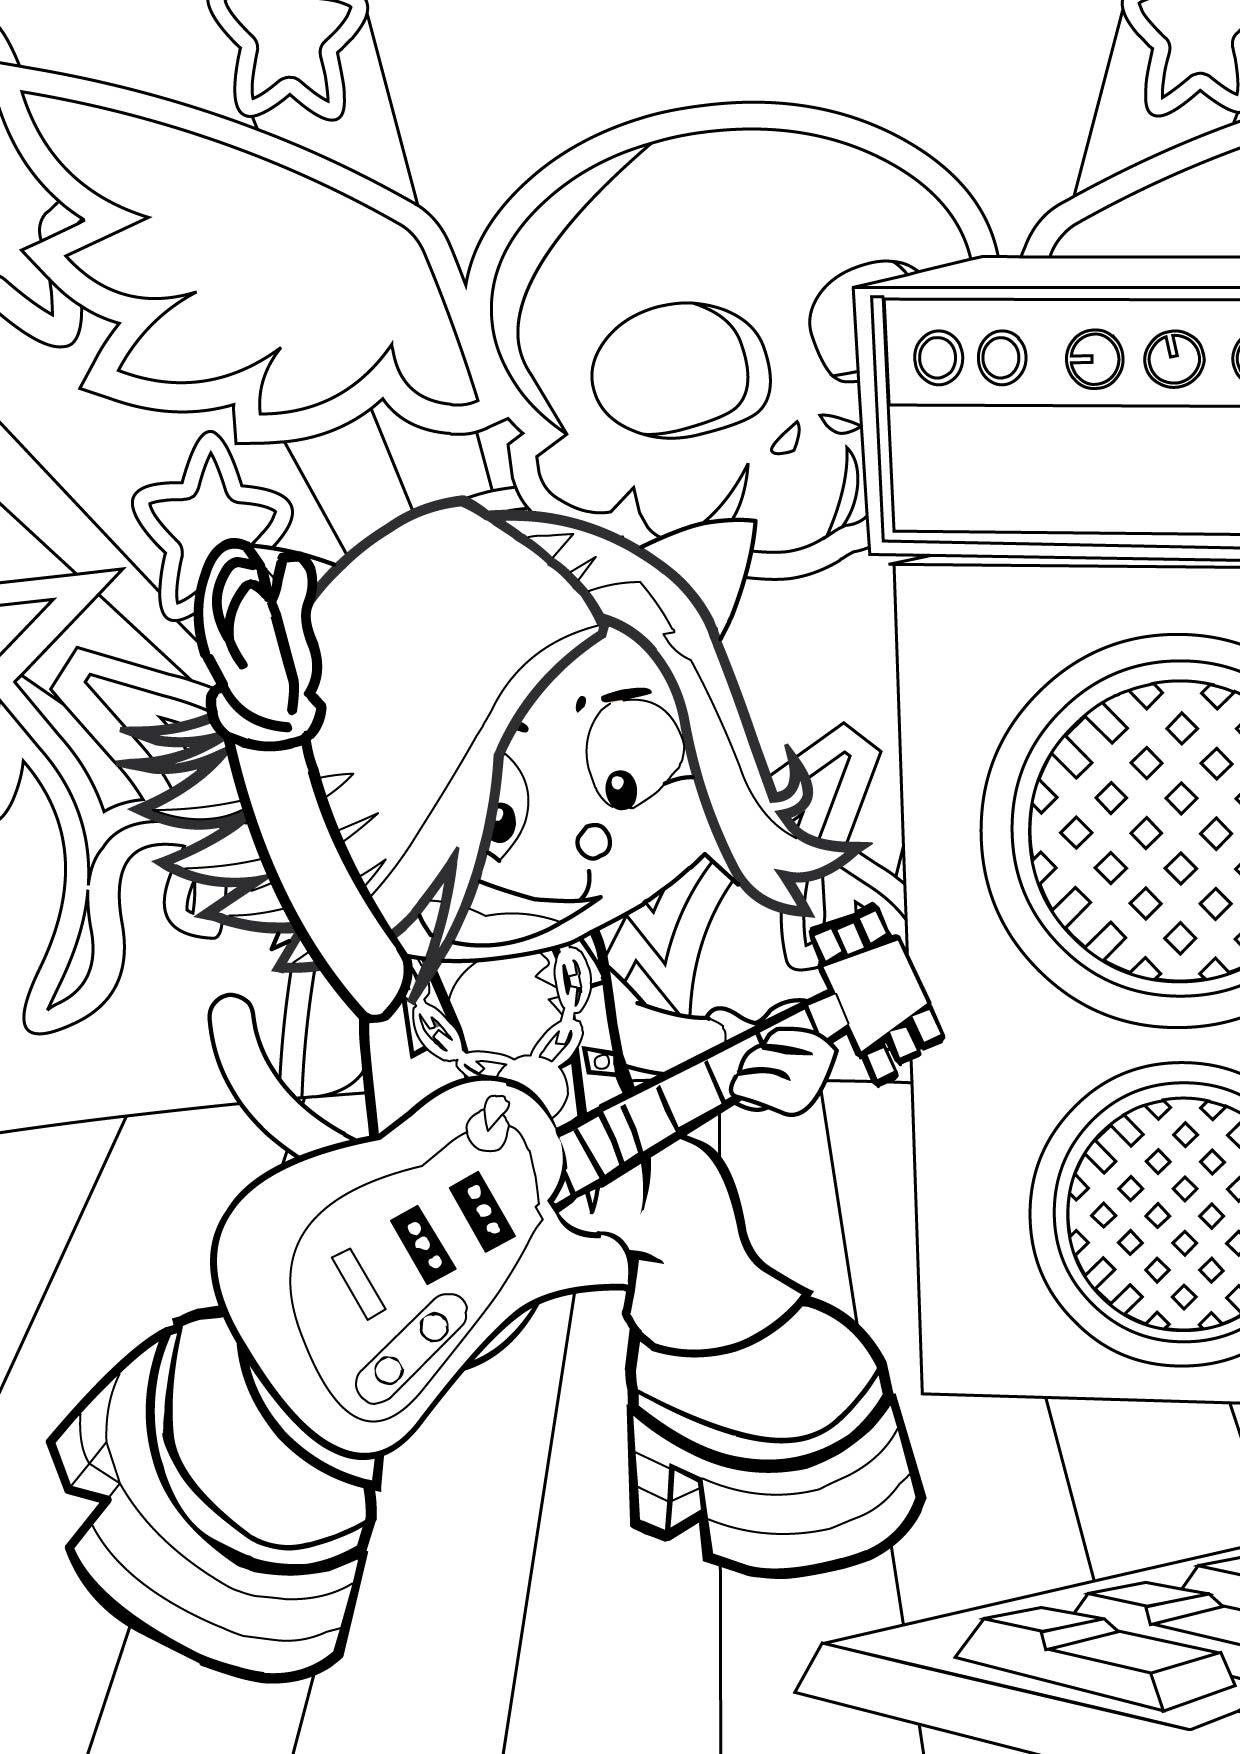 Rockstar Coloring Pages Printables Star Coloring Pages Cartoon